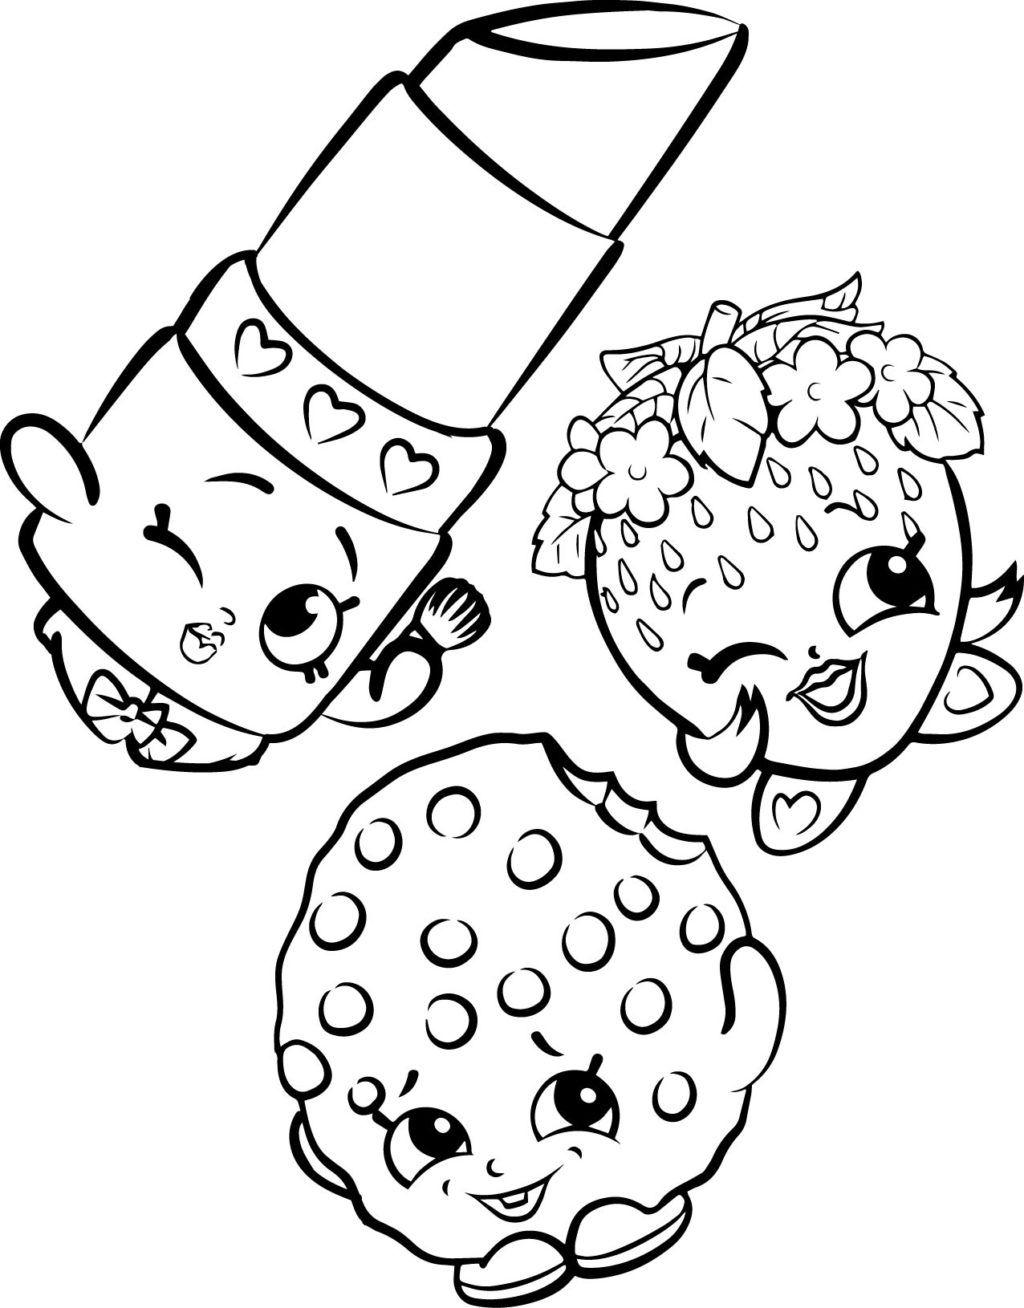 lobster coloring page lobster - Free Colouring Pages 2